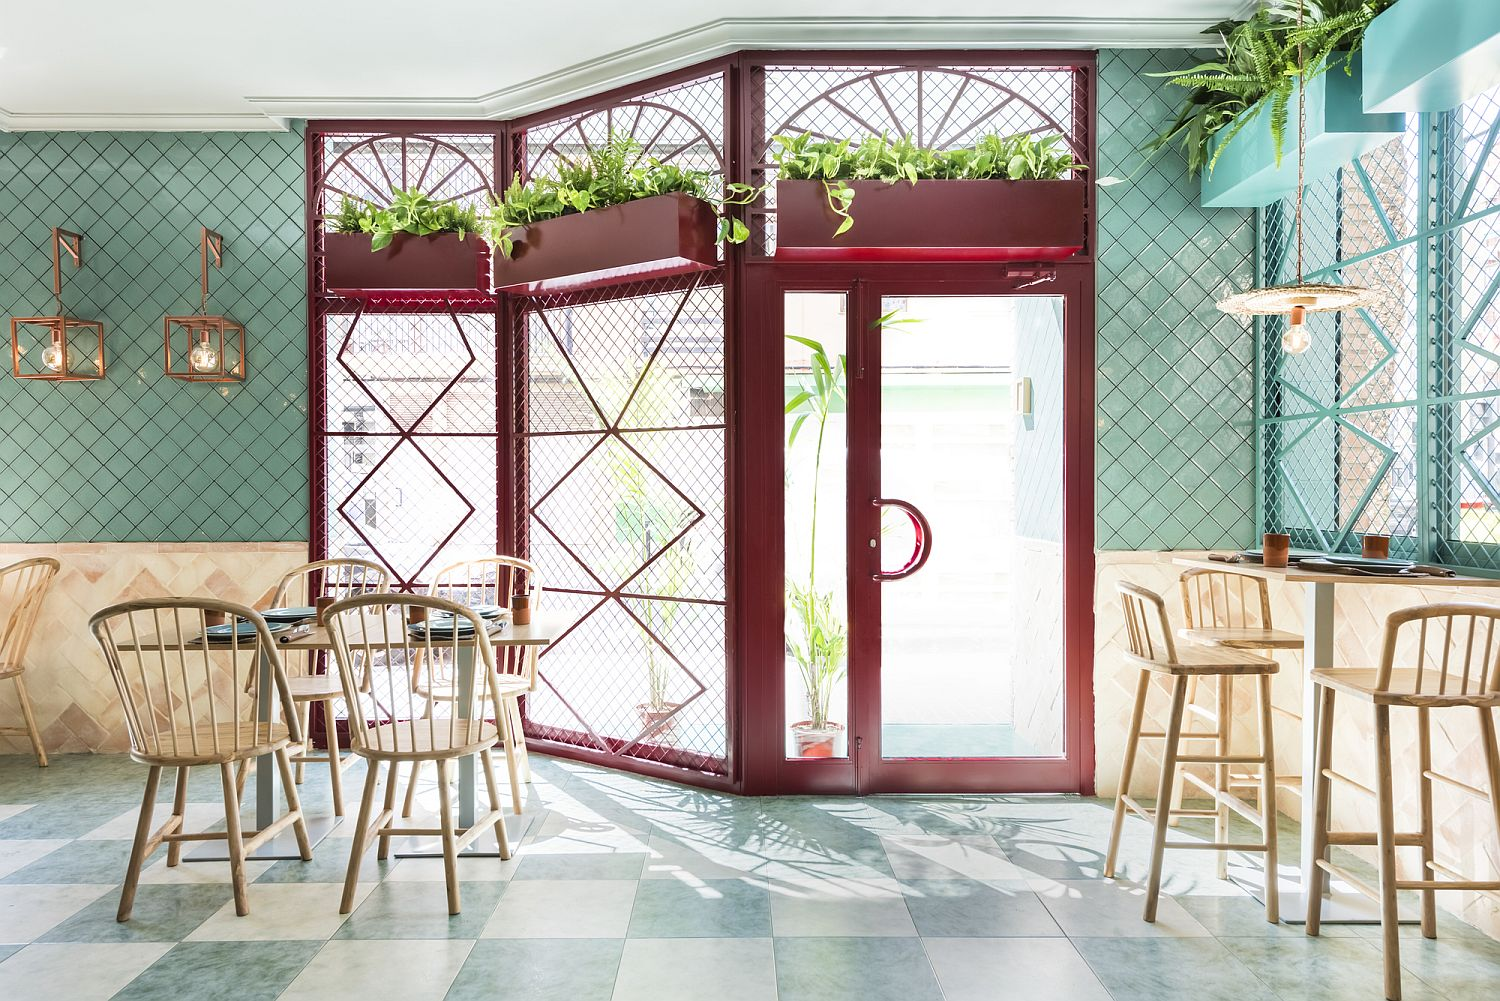 Explosive pops of color and apttern shape revamped pizzeria in Valencia